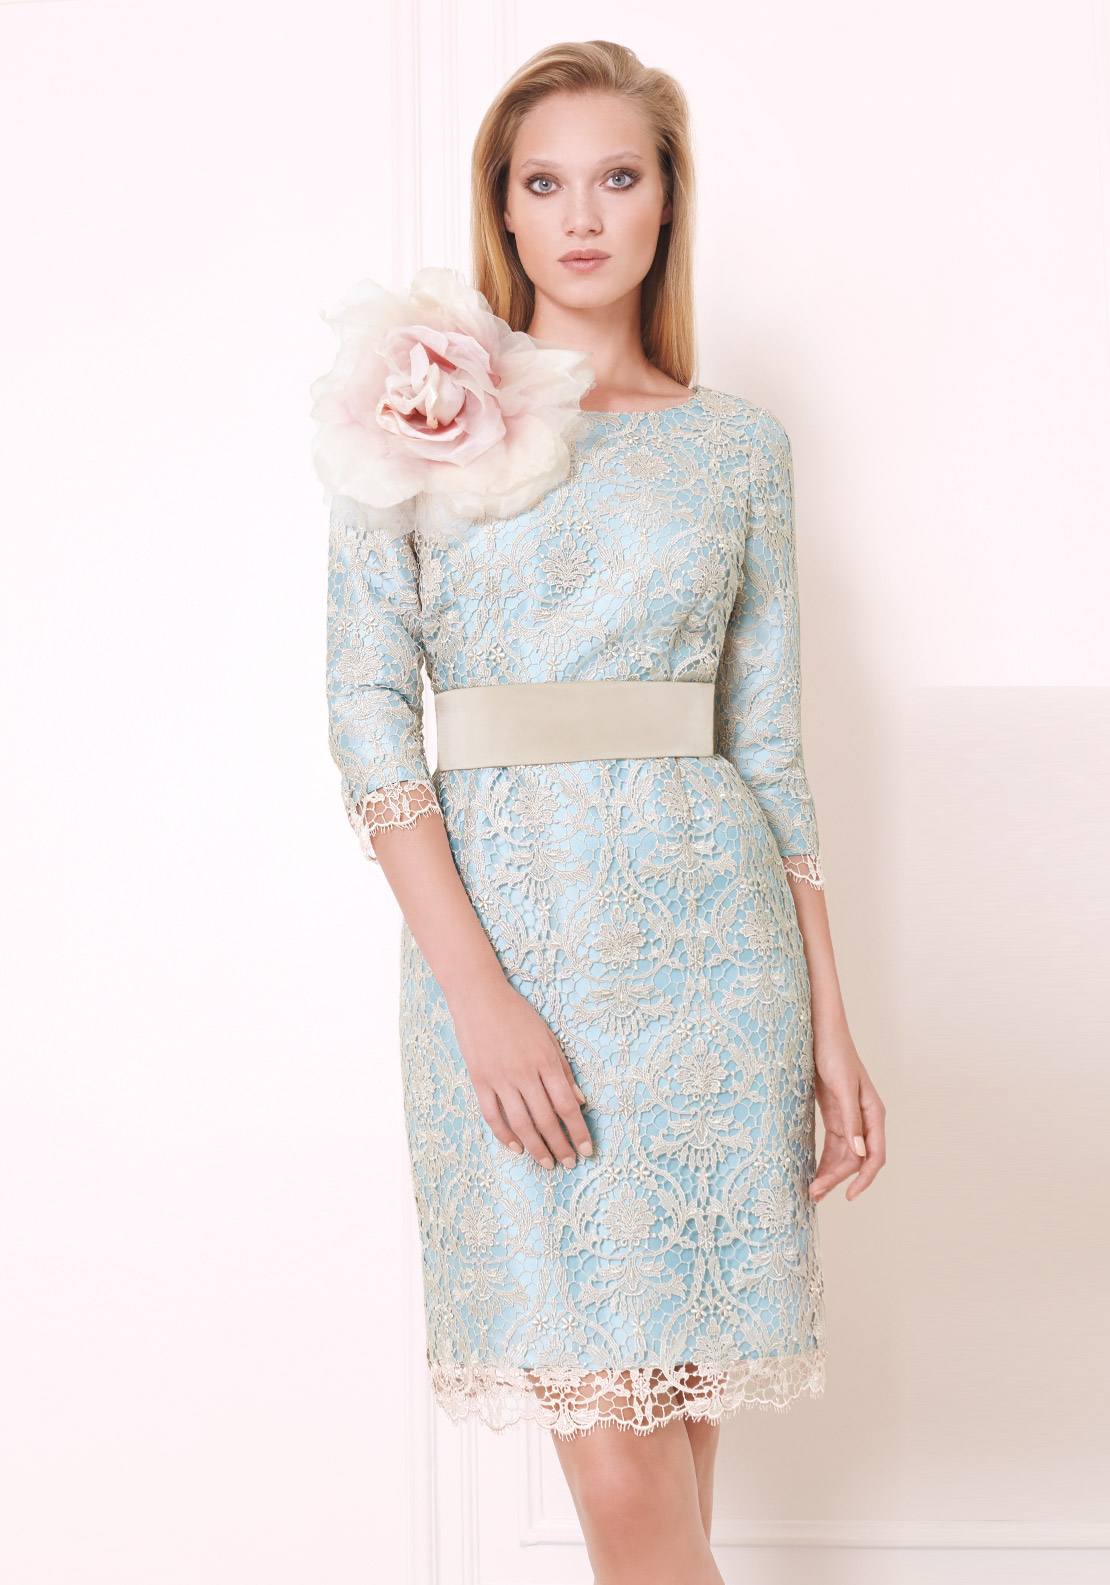 Mass by Matilda Cano Lace Overlay Dress, Blue and Champagne